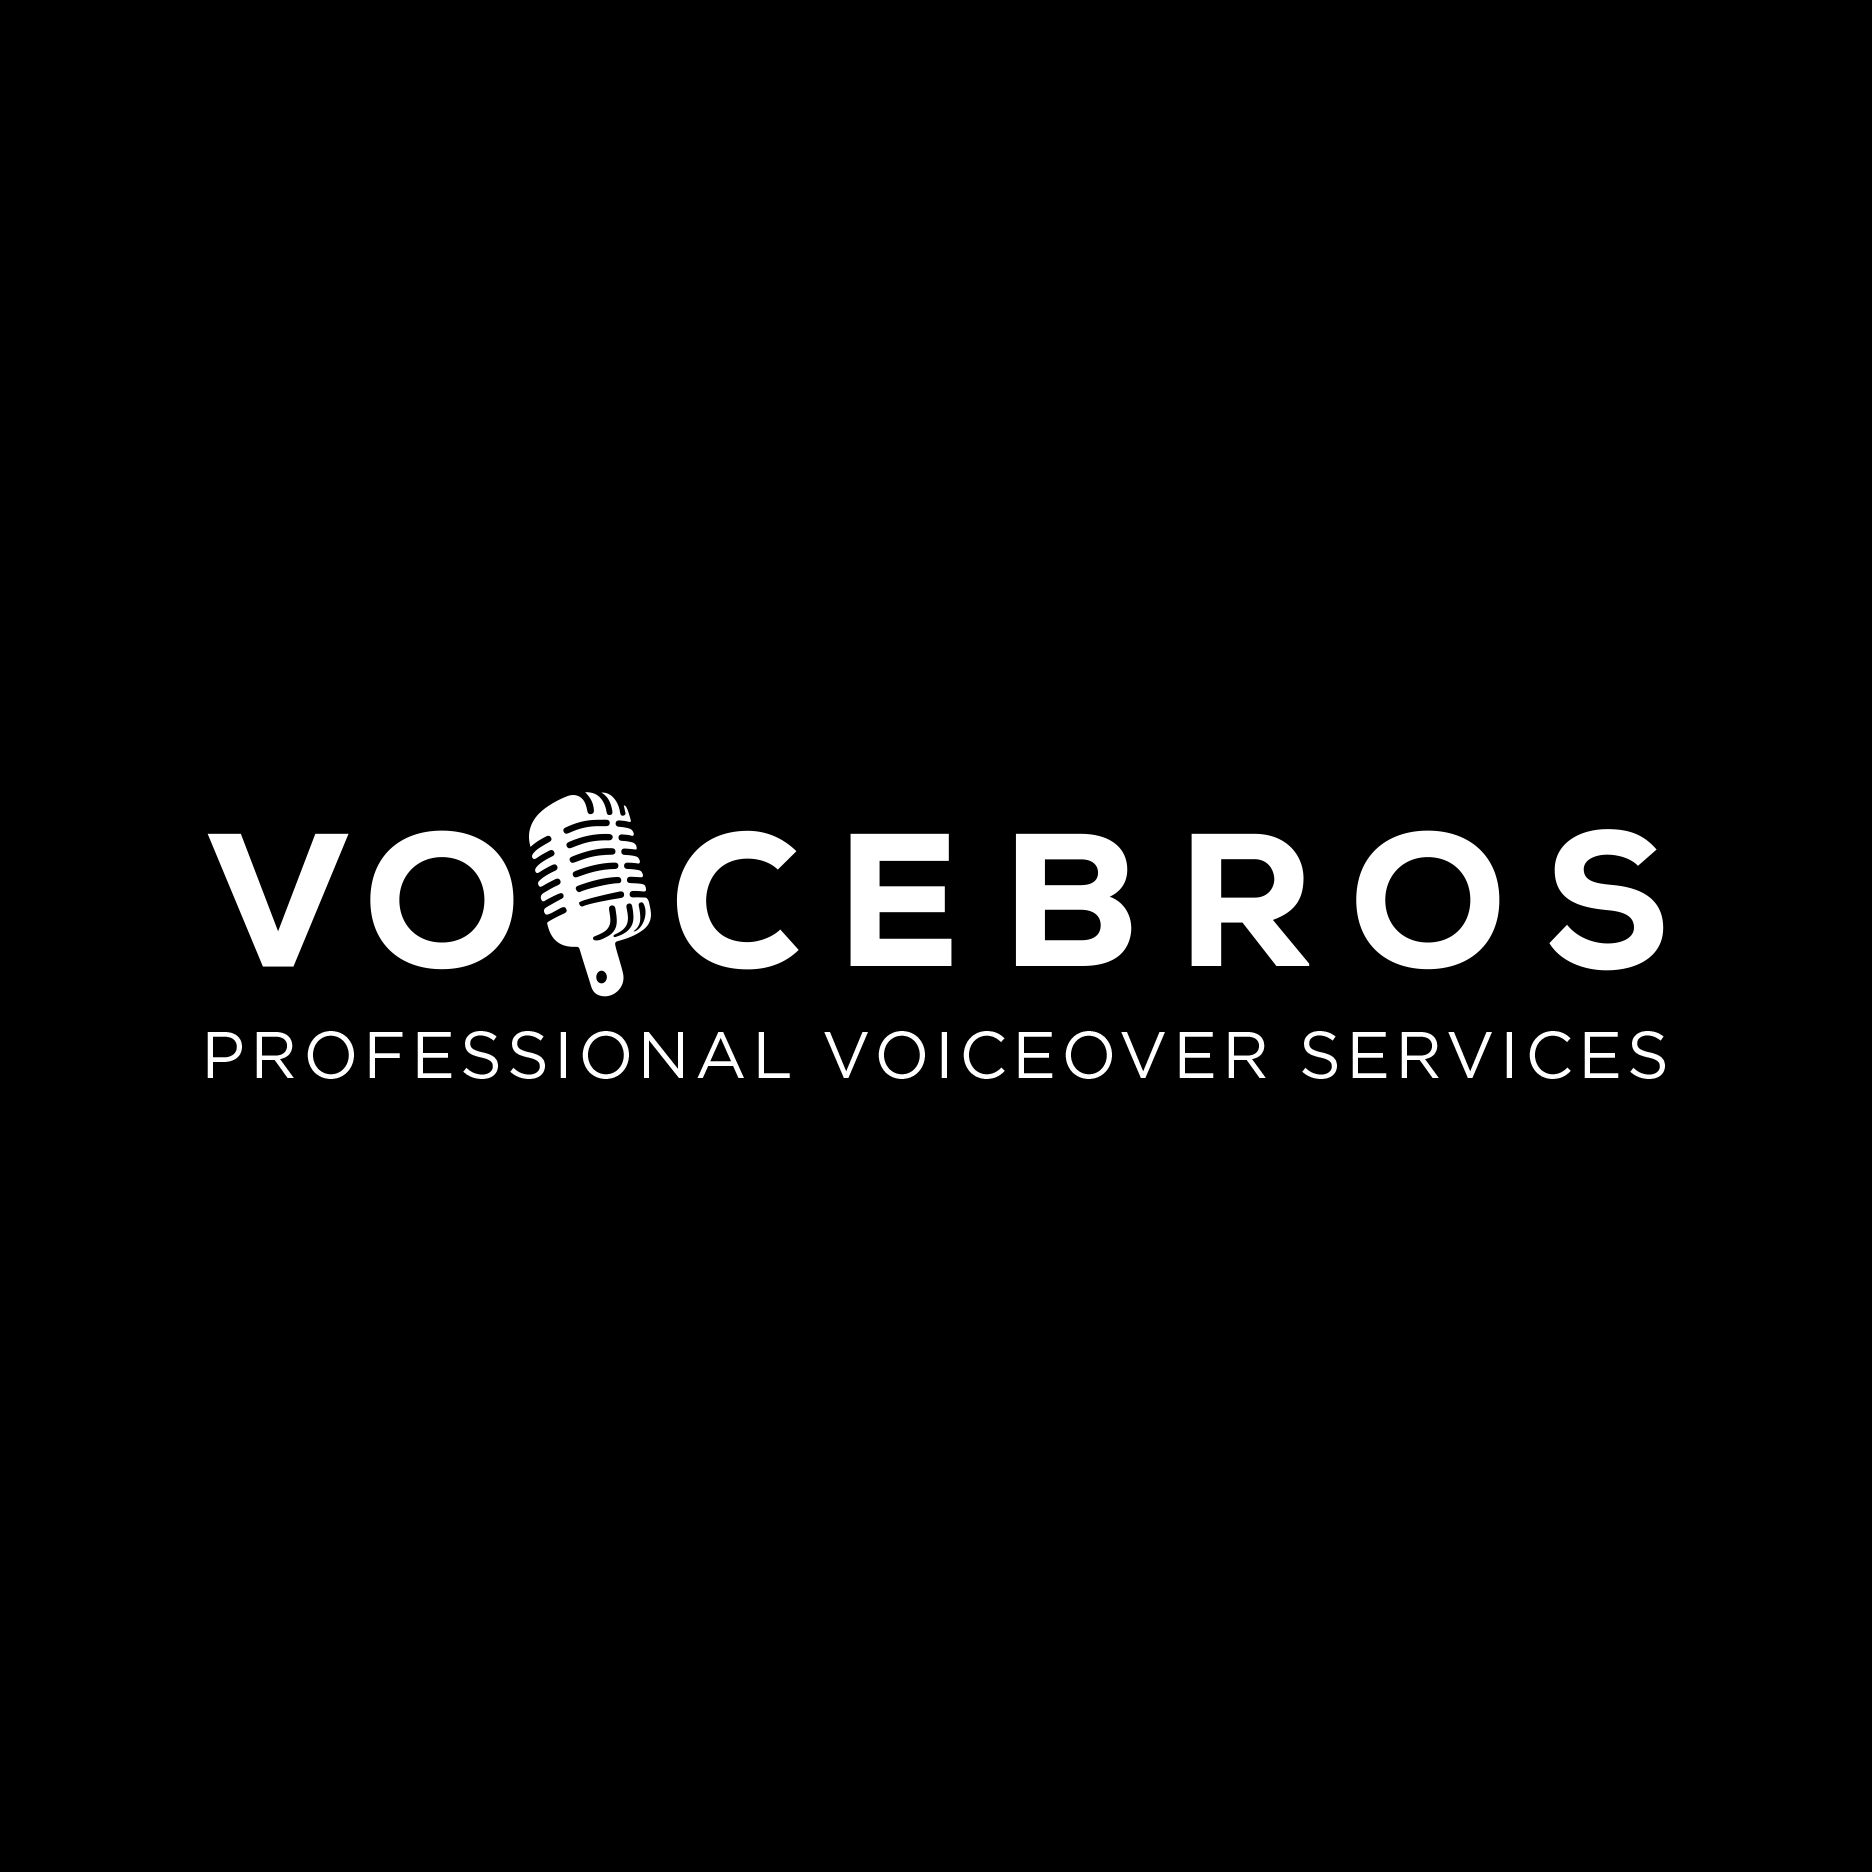 mohamed mahmoud abass is a voice over actor